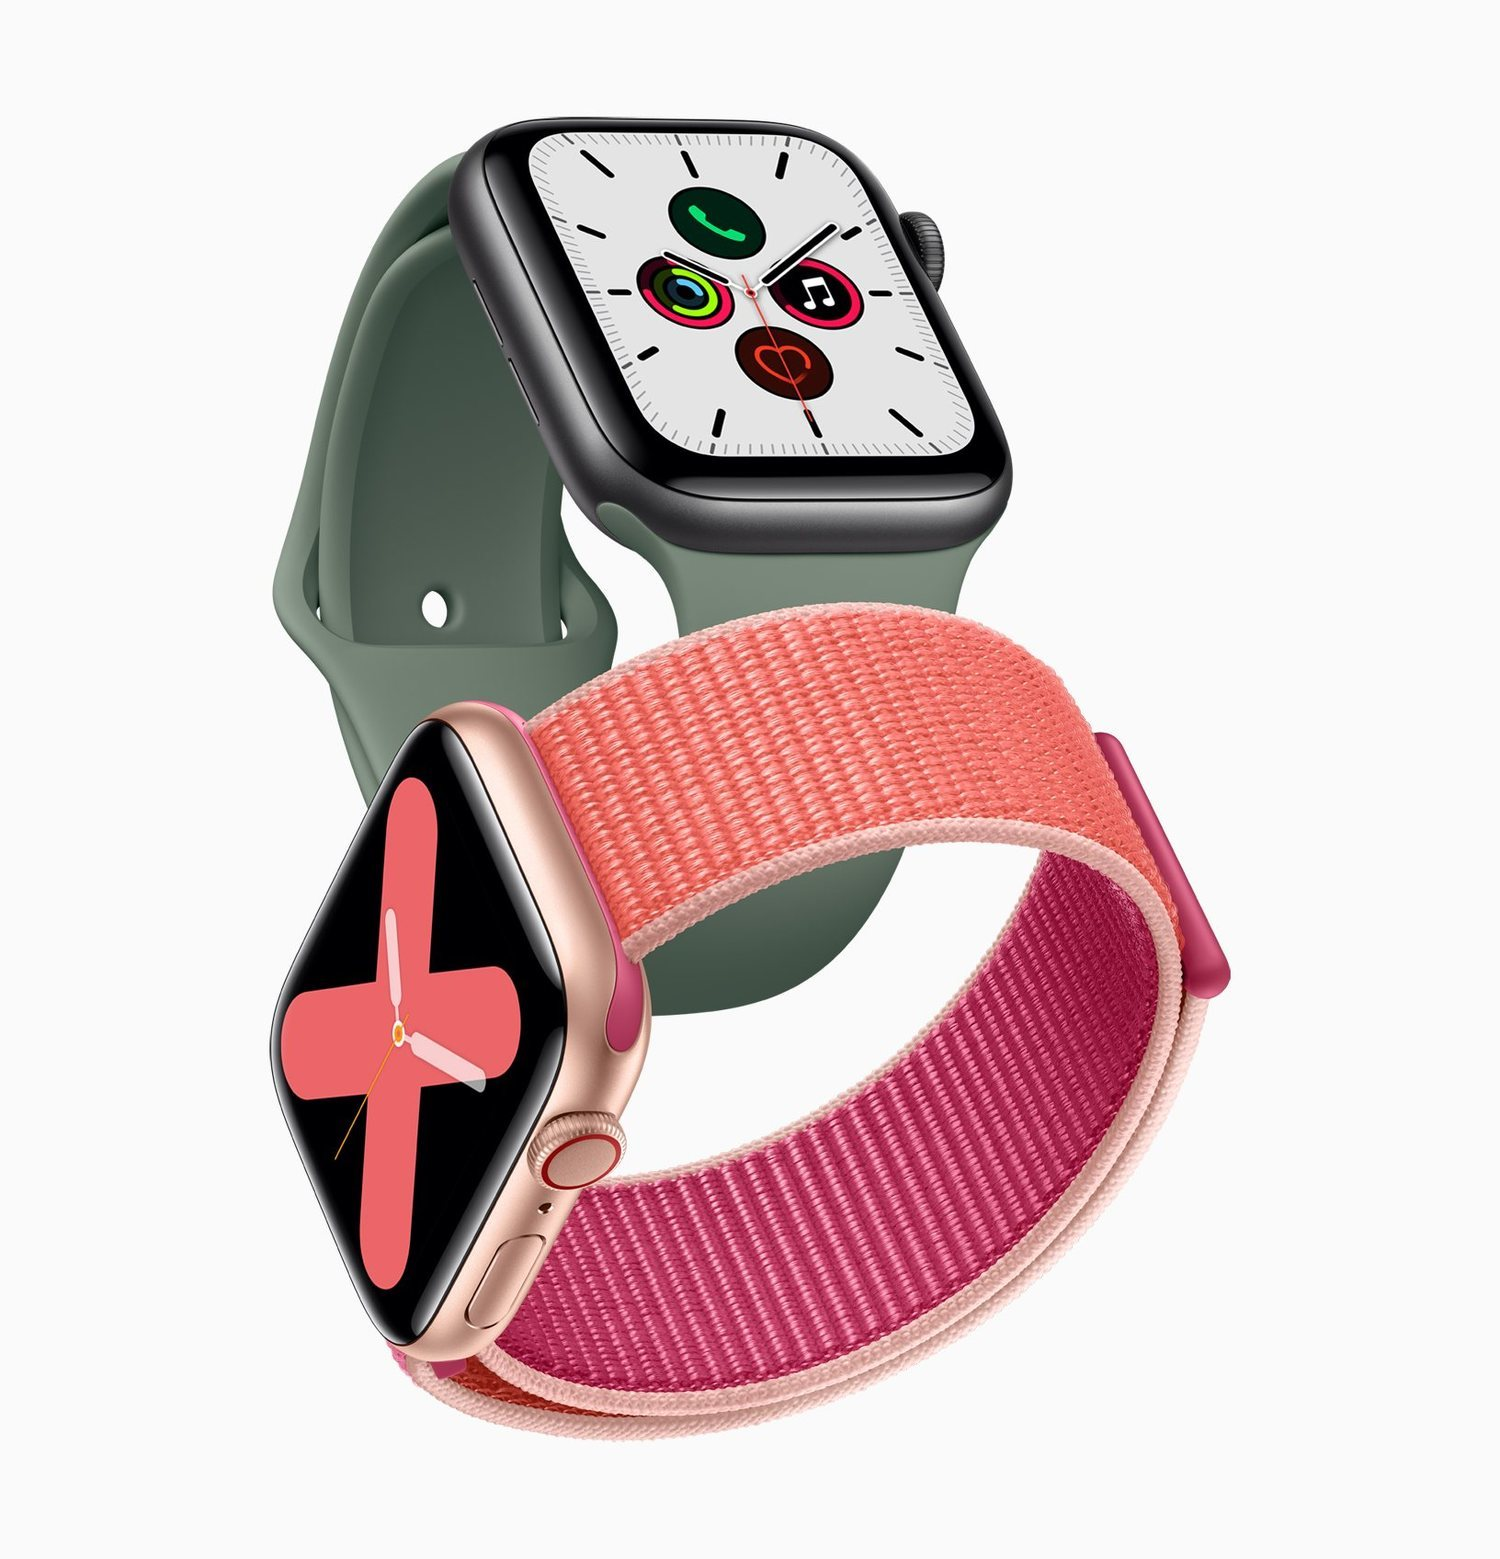 El nuevo Apple Watch Series 5